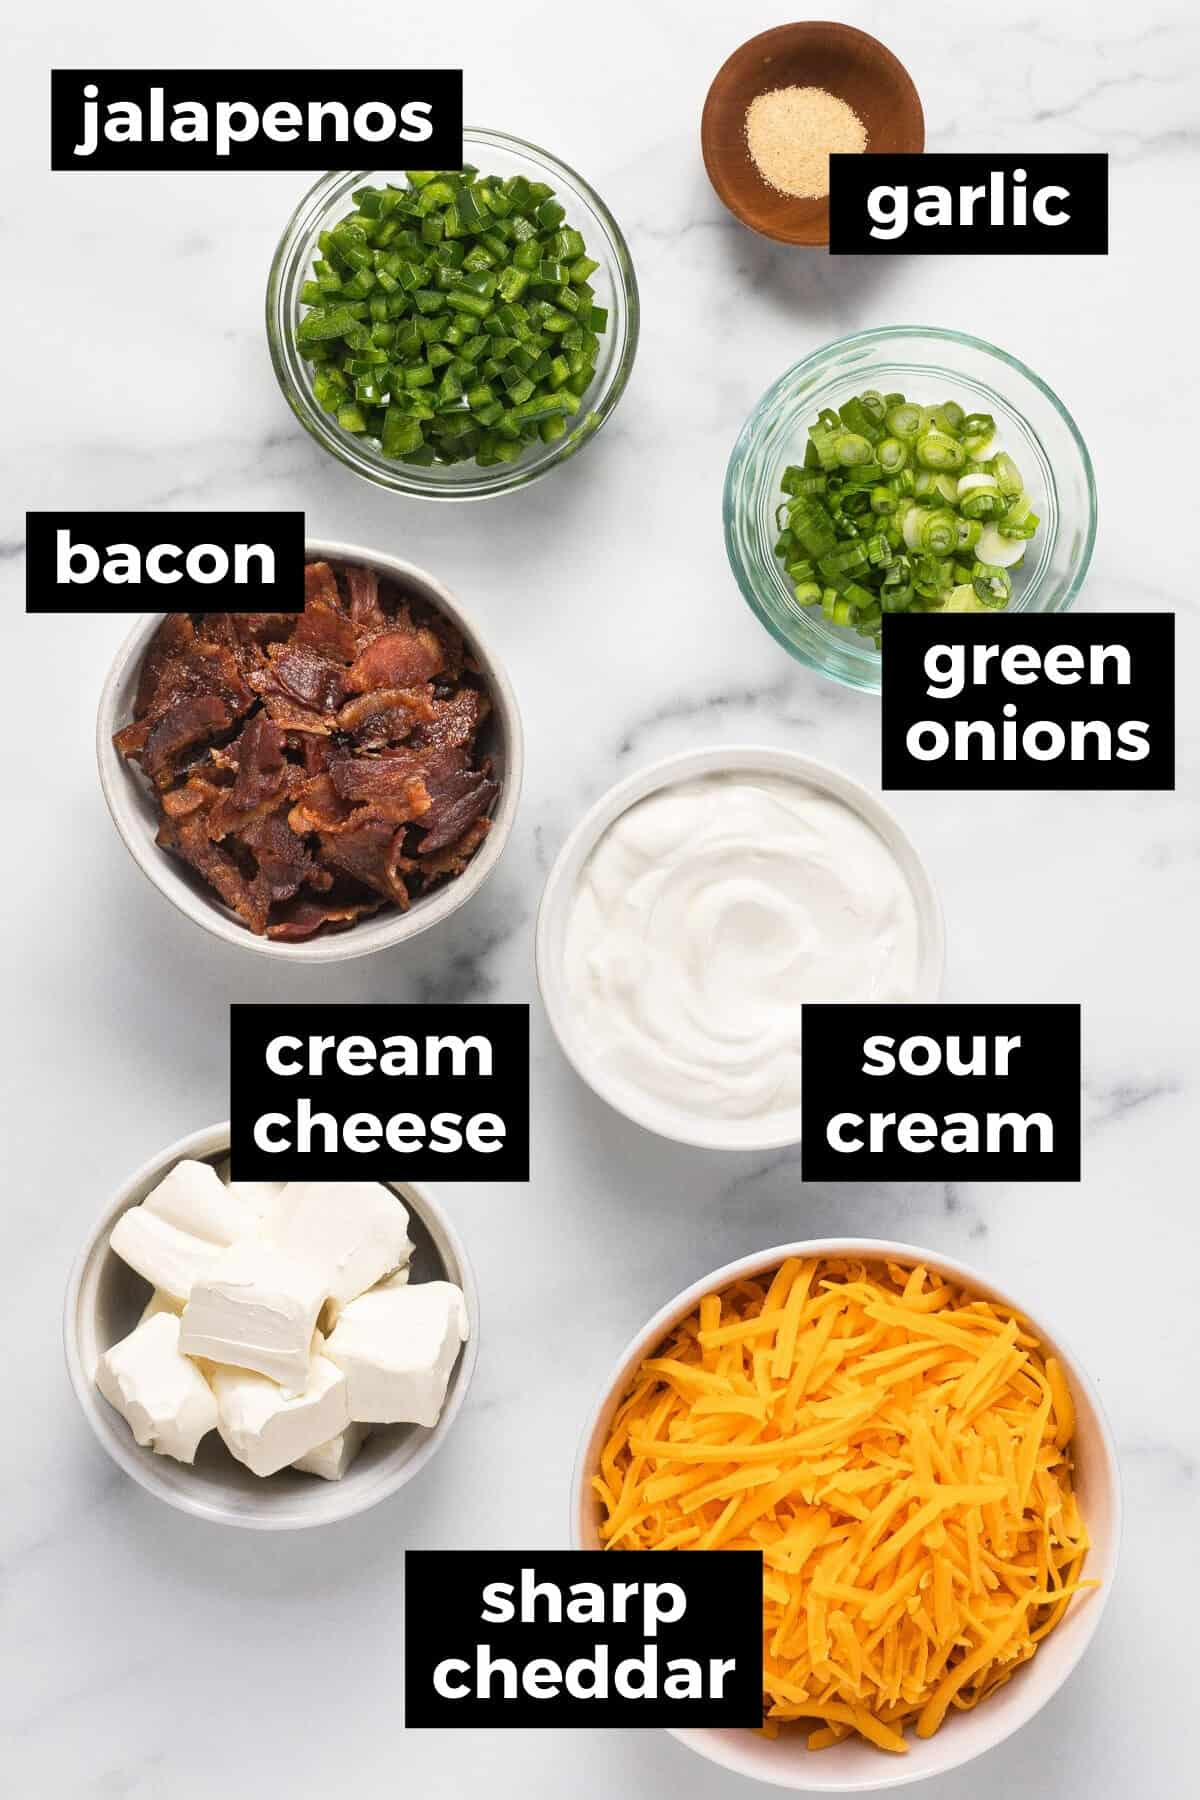 White marble counter top with ingredients to make jalapeno popper dip